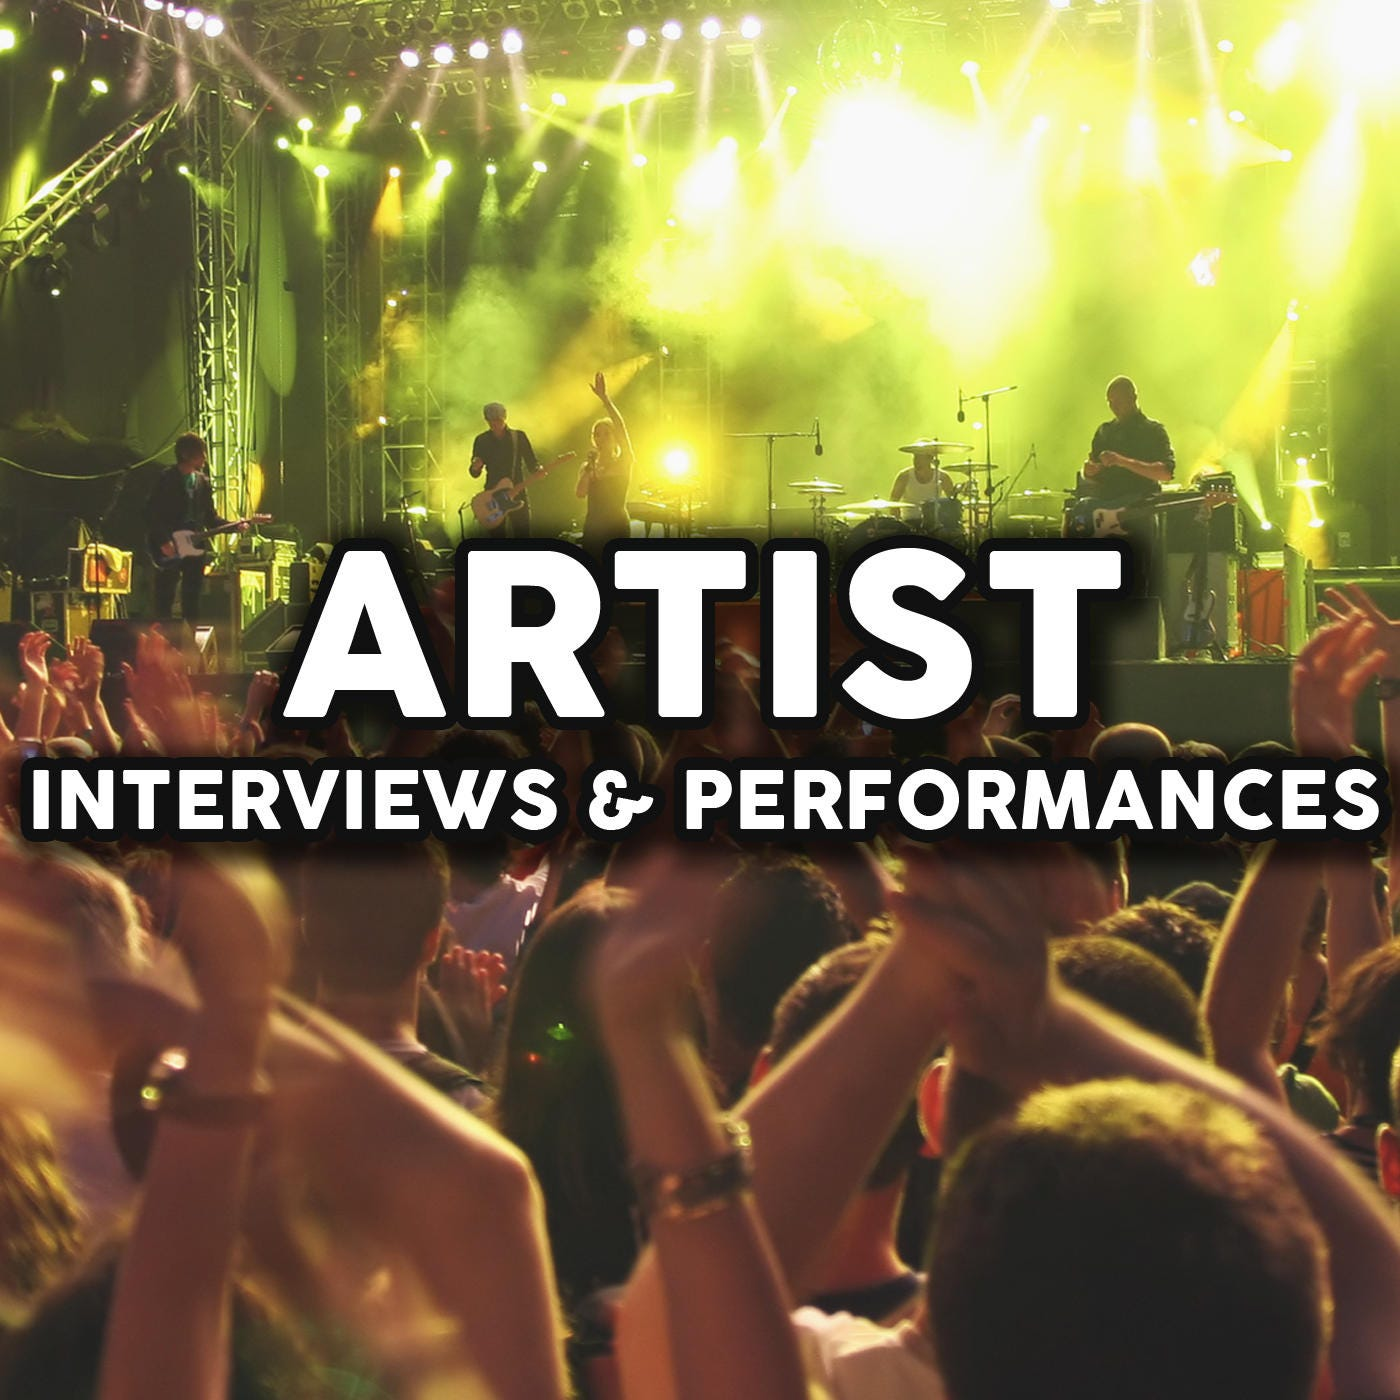 Artist Interviews & Performances